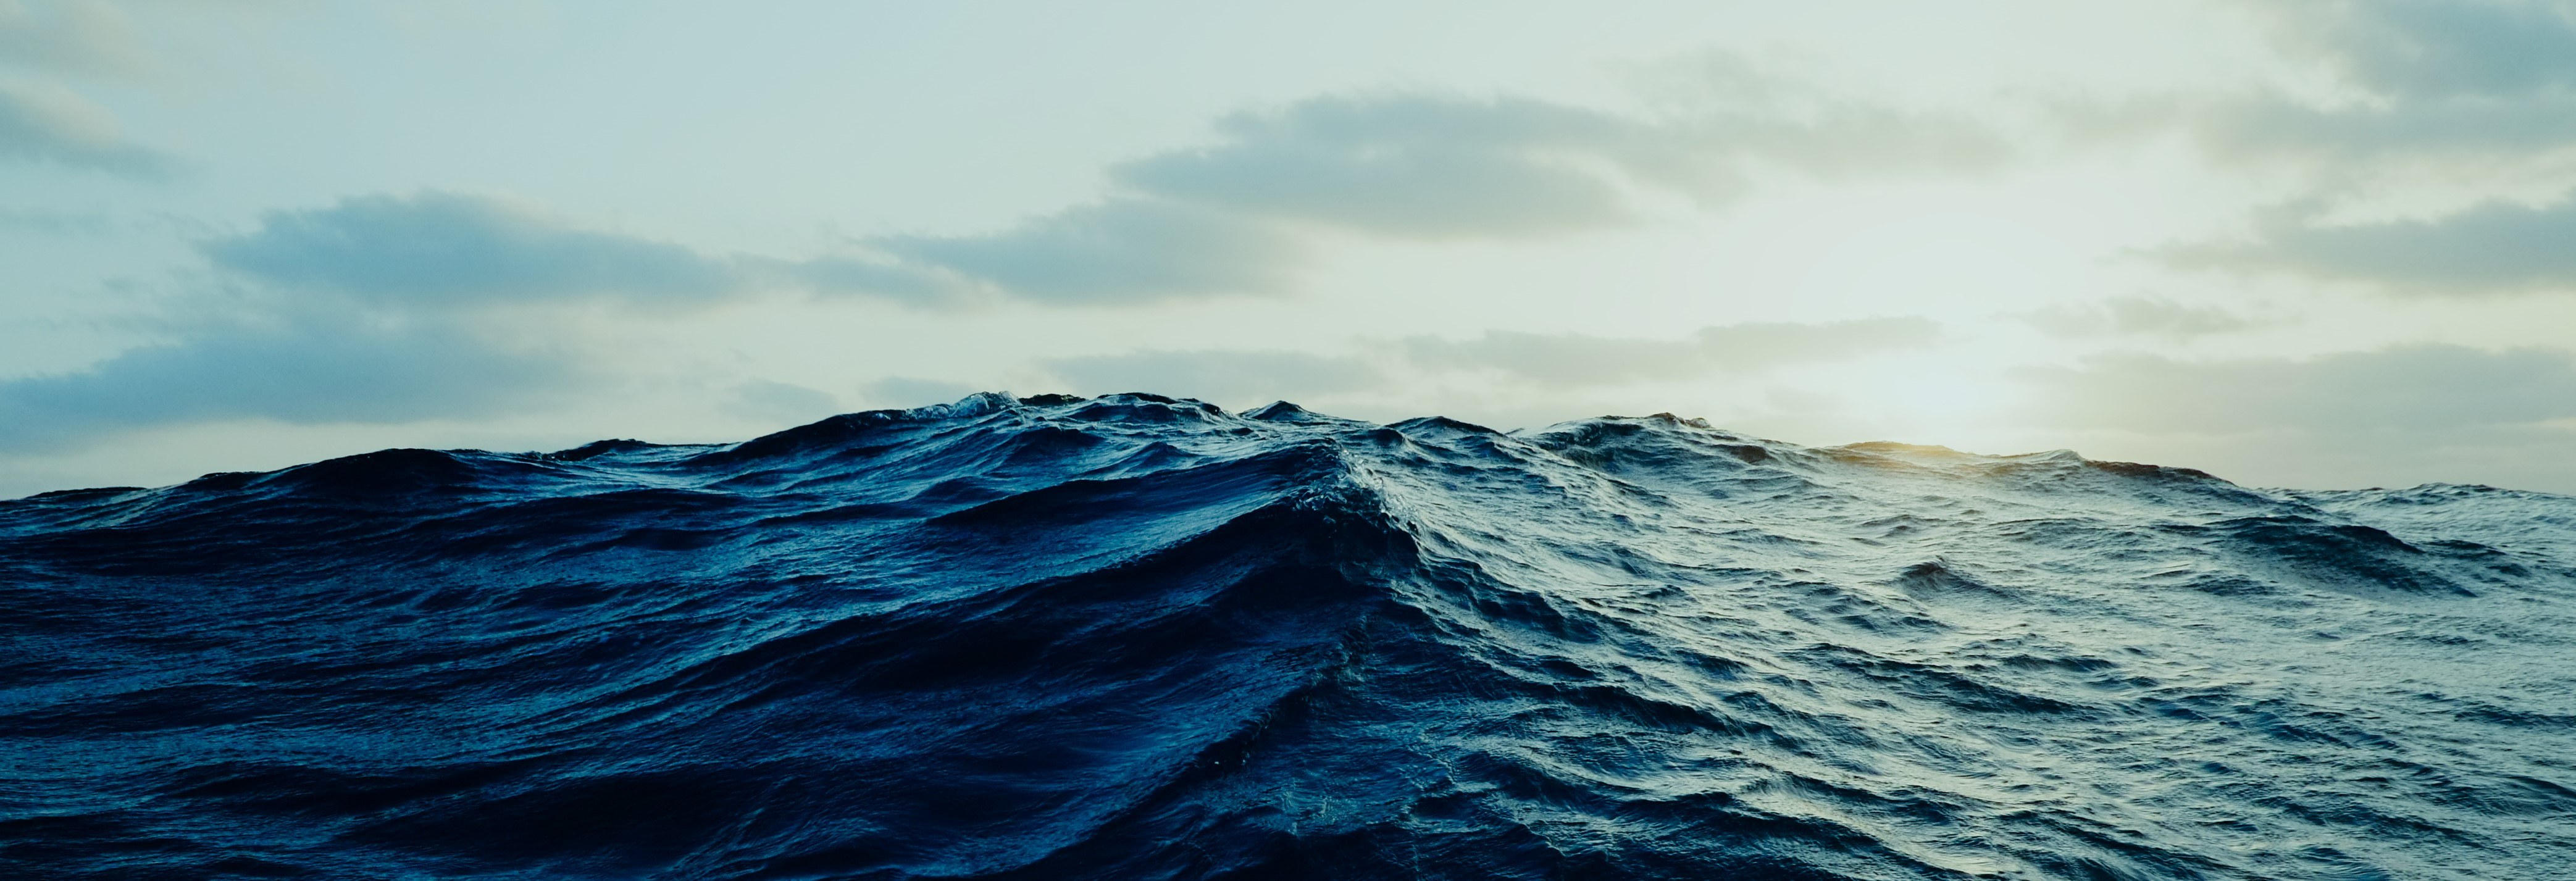 view-of-a-large-wave-far-out-at-the-ocean-1069301360 4200x2800 1